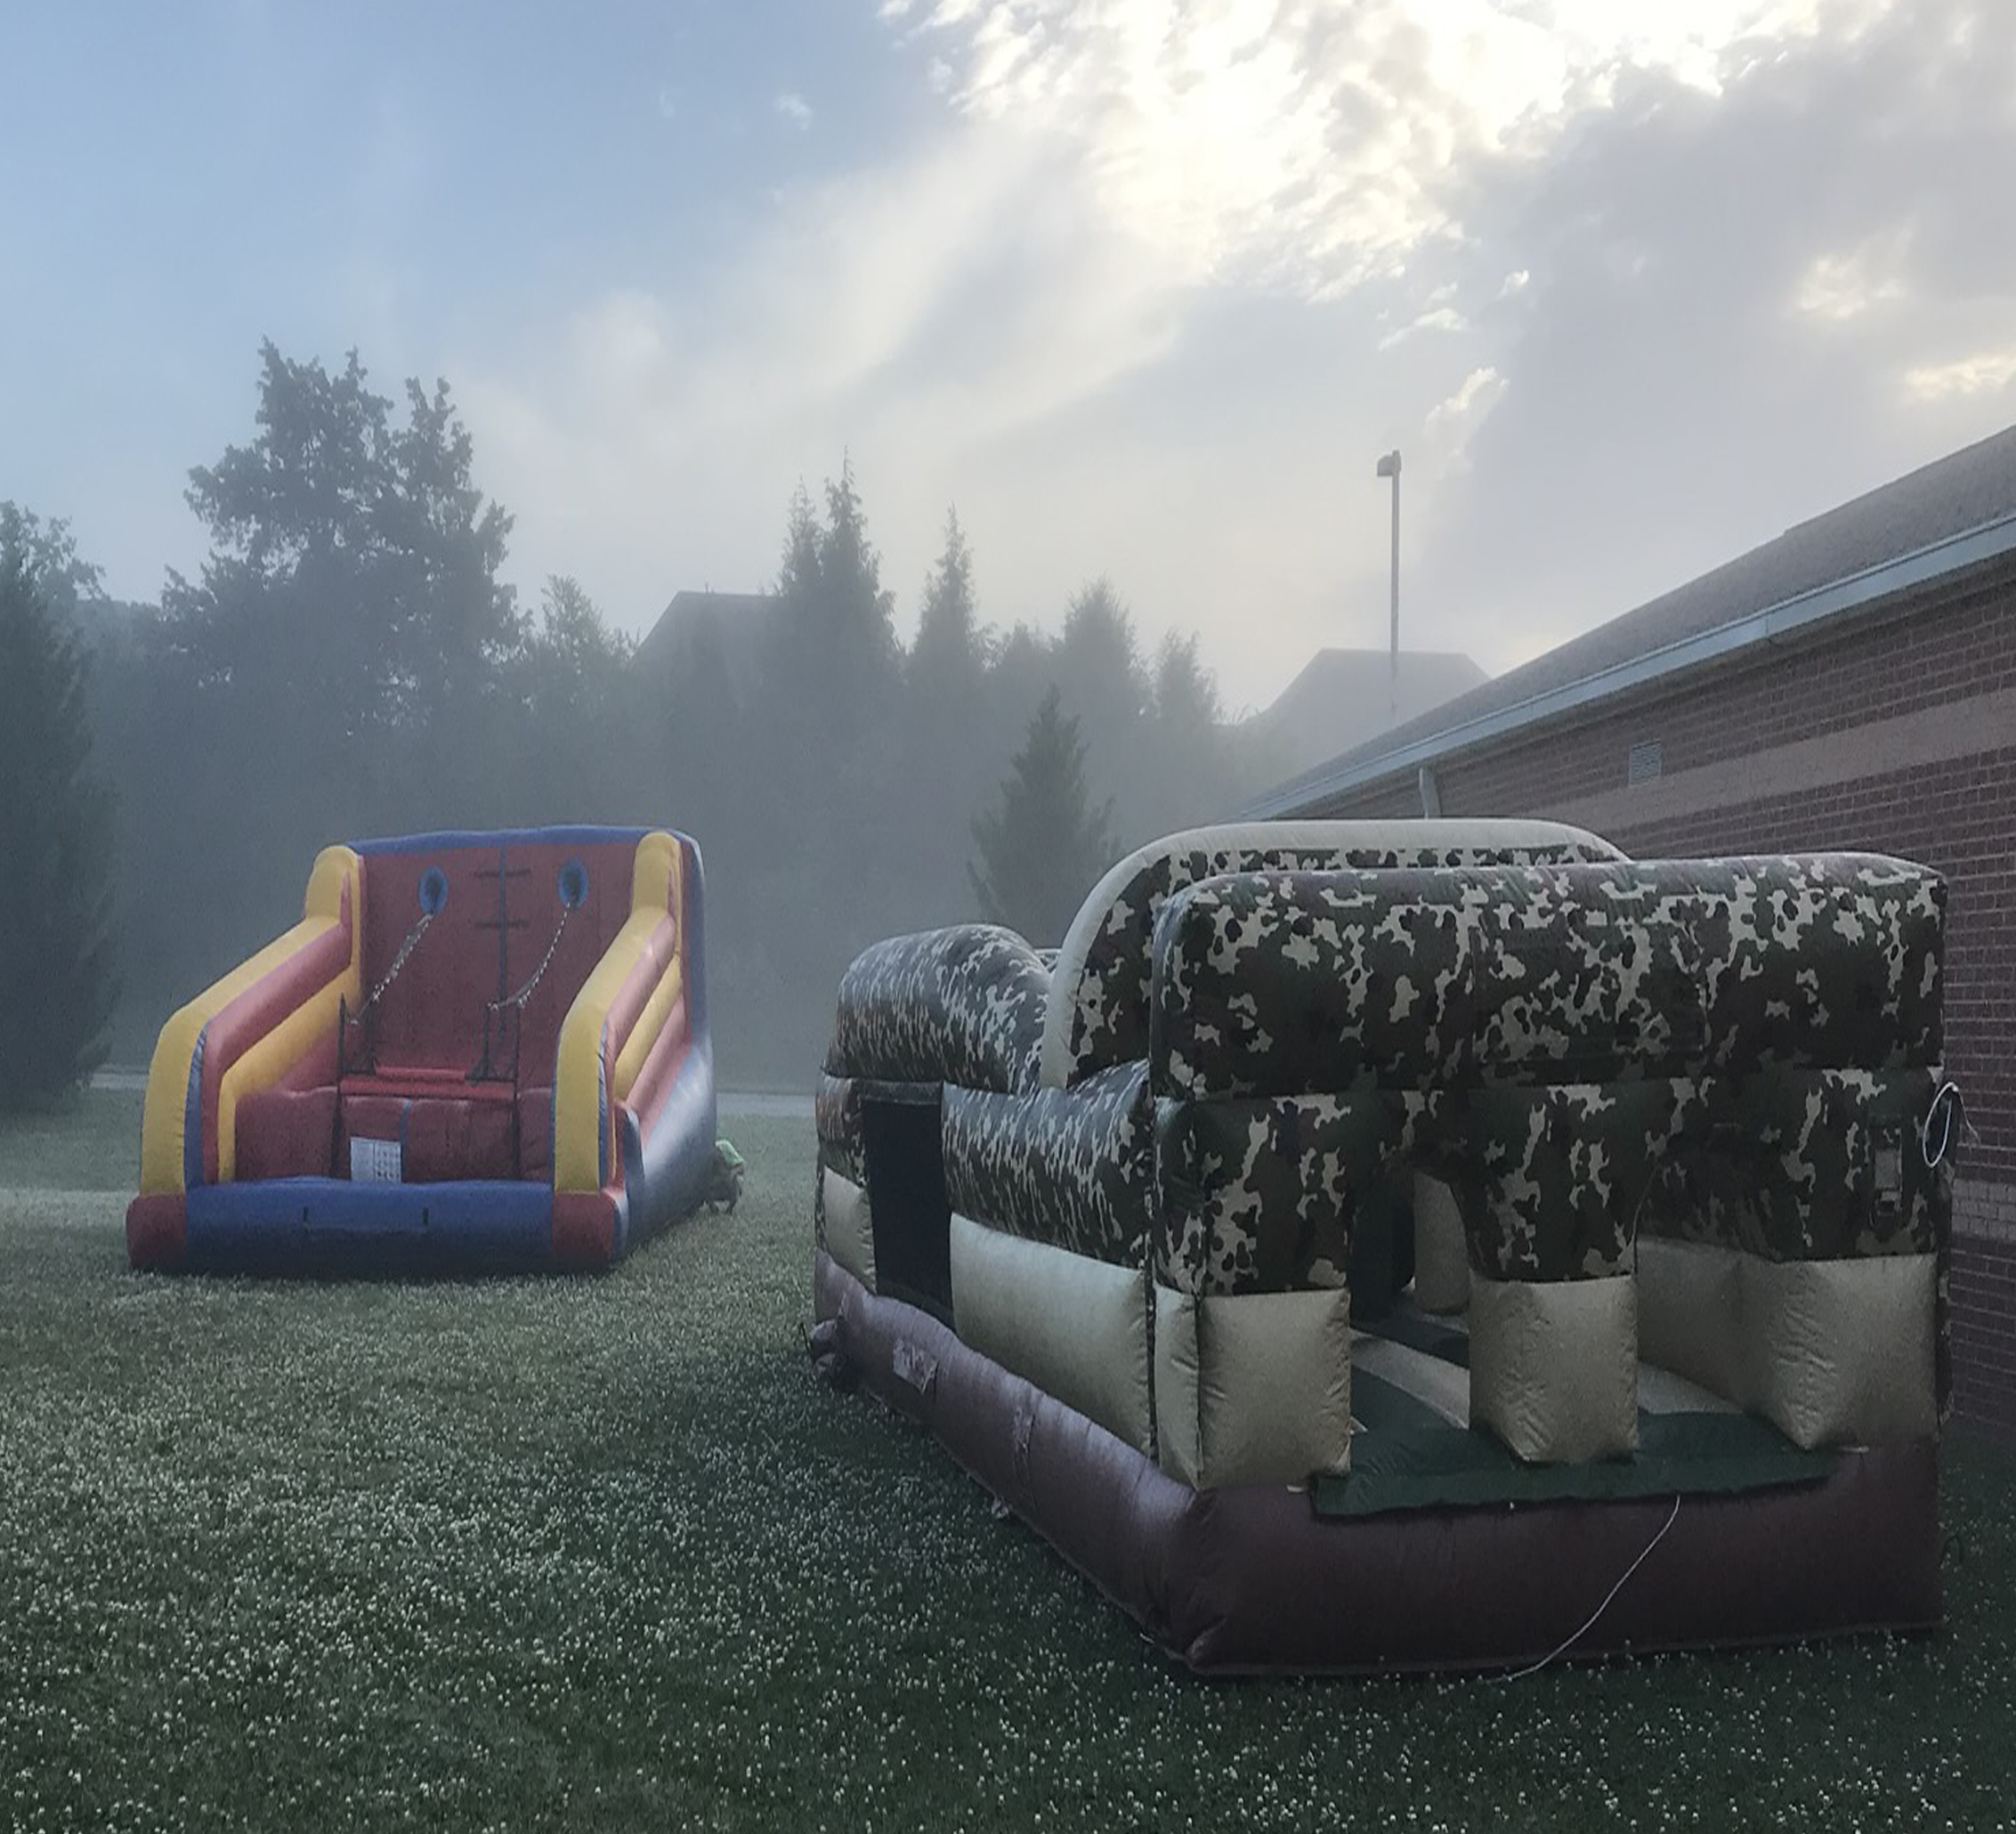 inflatable obstacle course rental near me